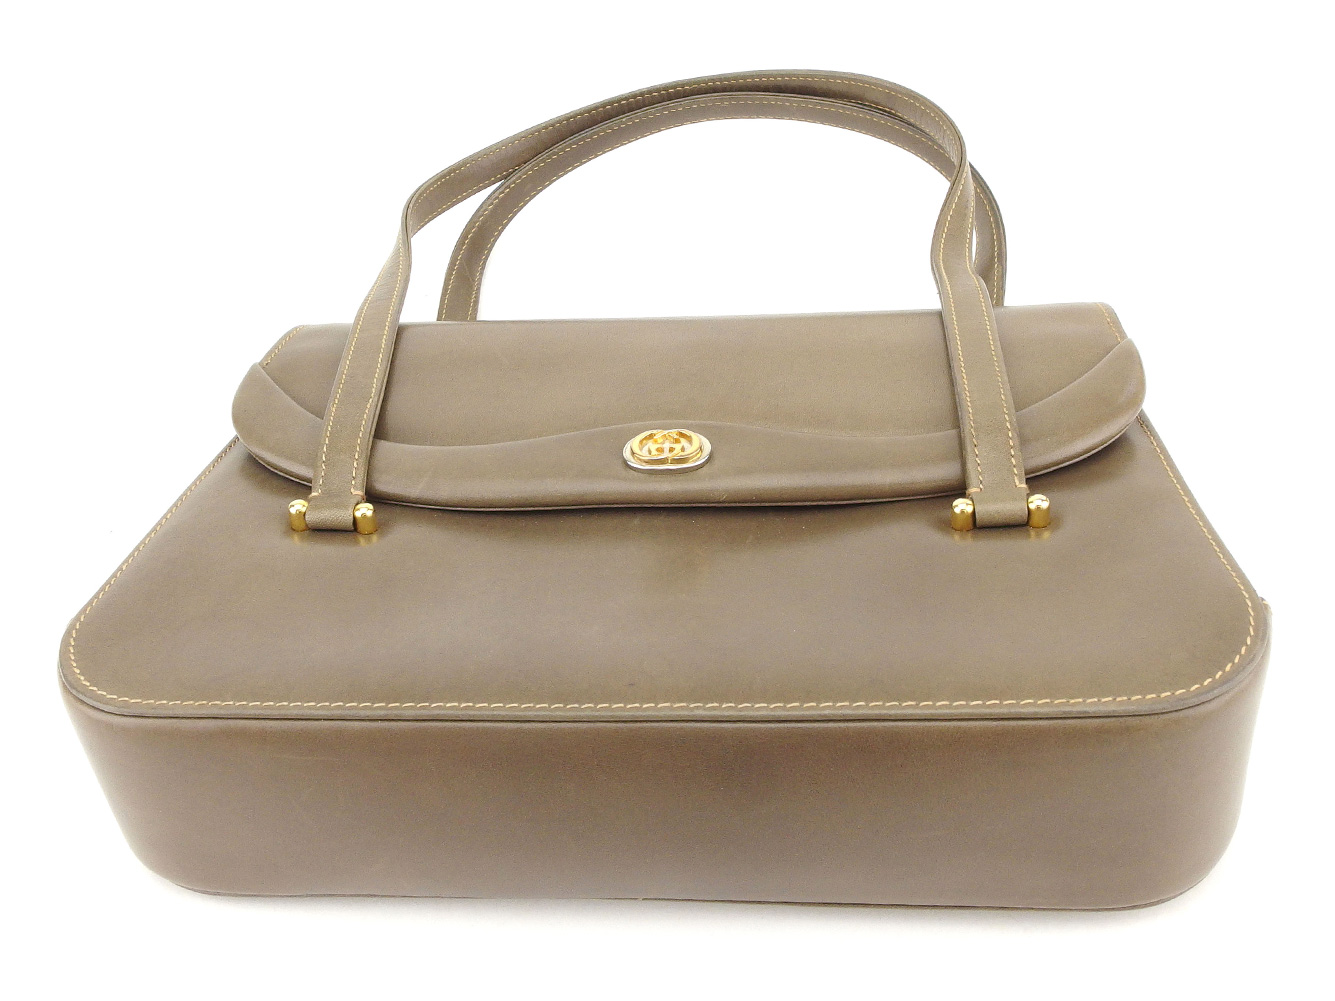 Gucci GUCCI handbag bag lady old Gucci double G brown gold silver leather  vintage quality goods T8715 43706bba3c94c